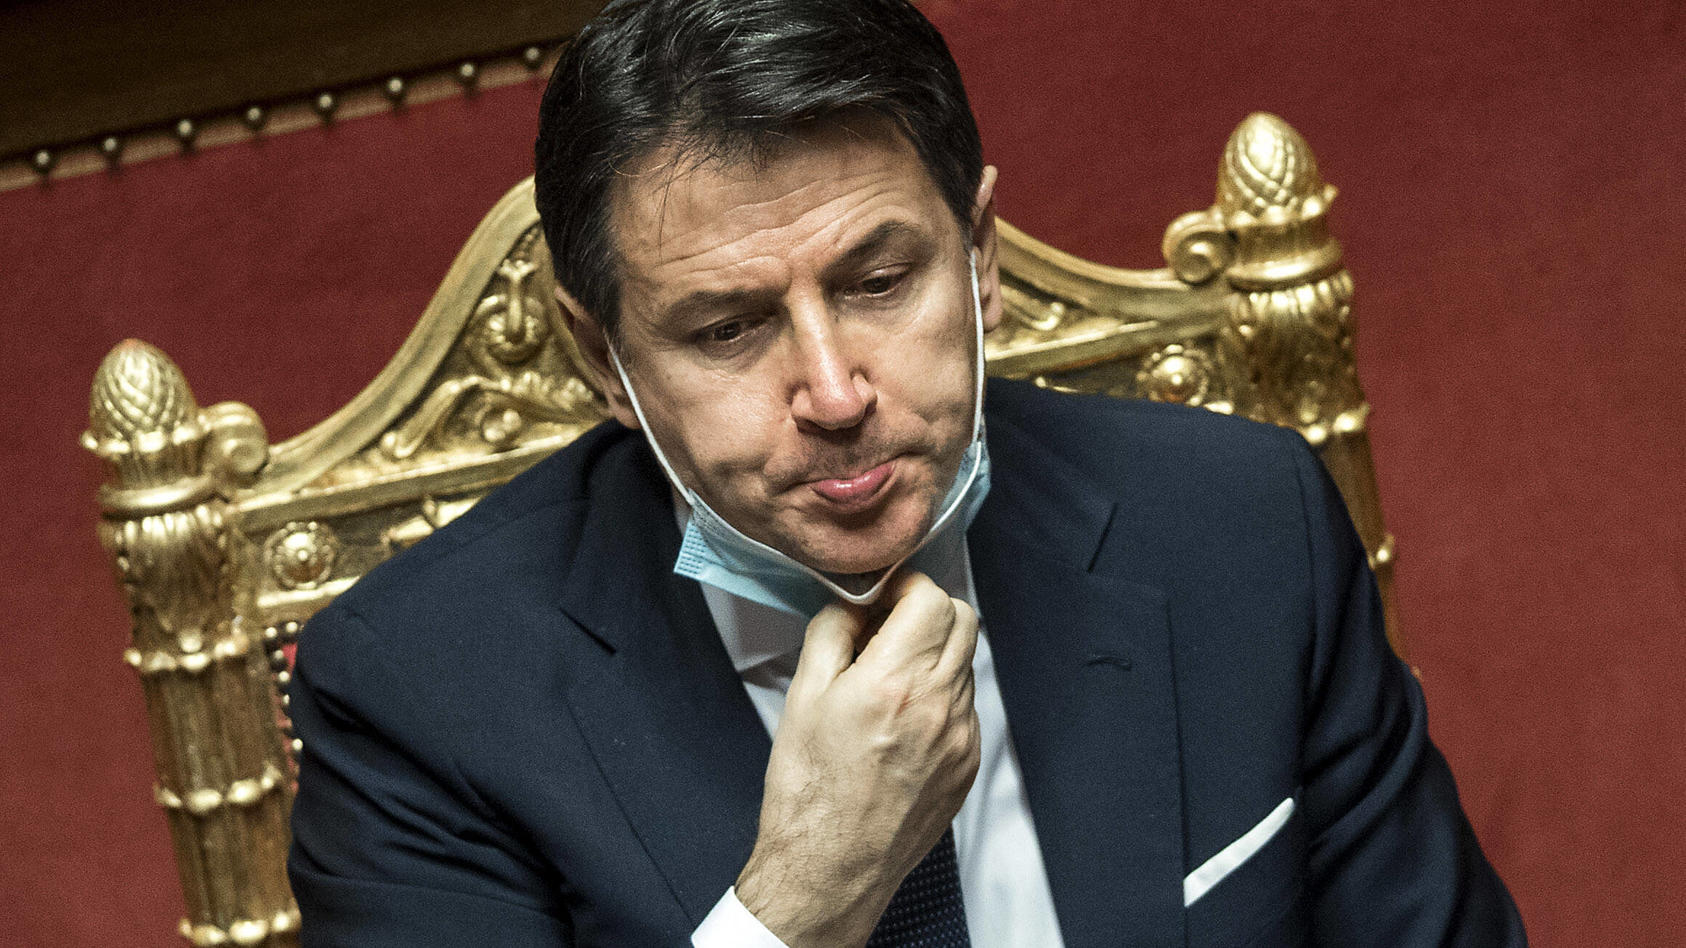 The Italian Premier Giuseppe Conte during the information at the Senate about the government crisis. Rome(Italy), Janua